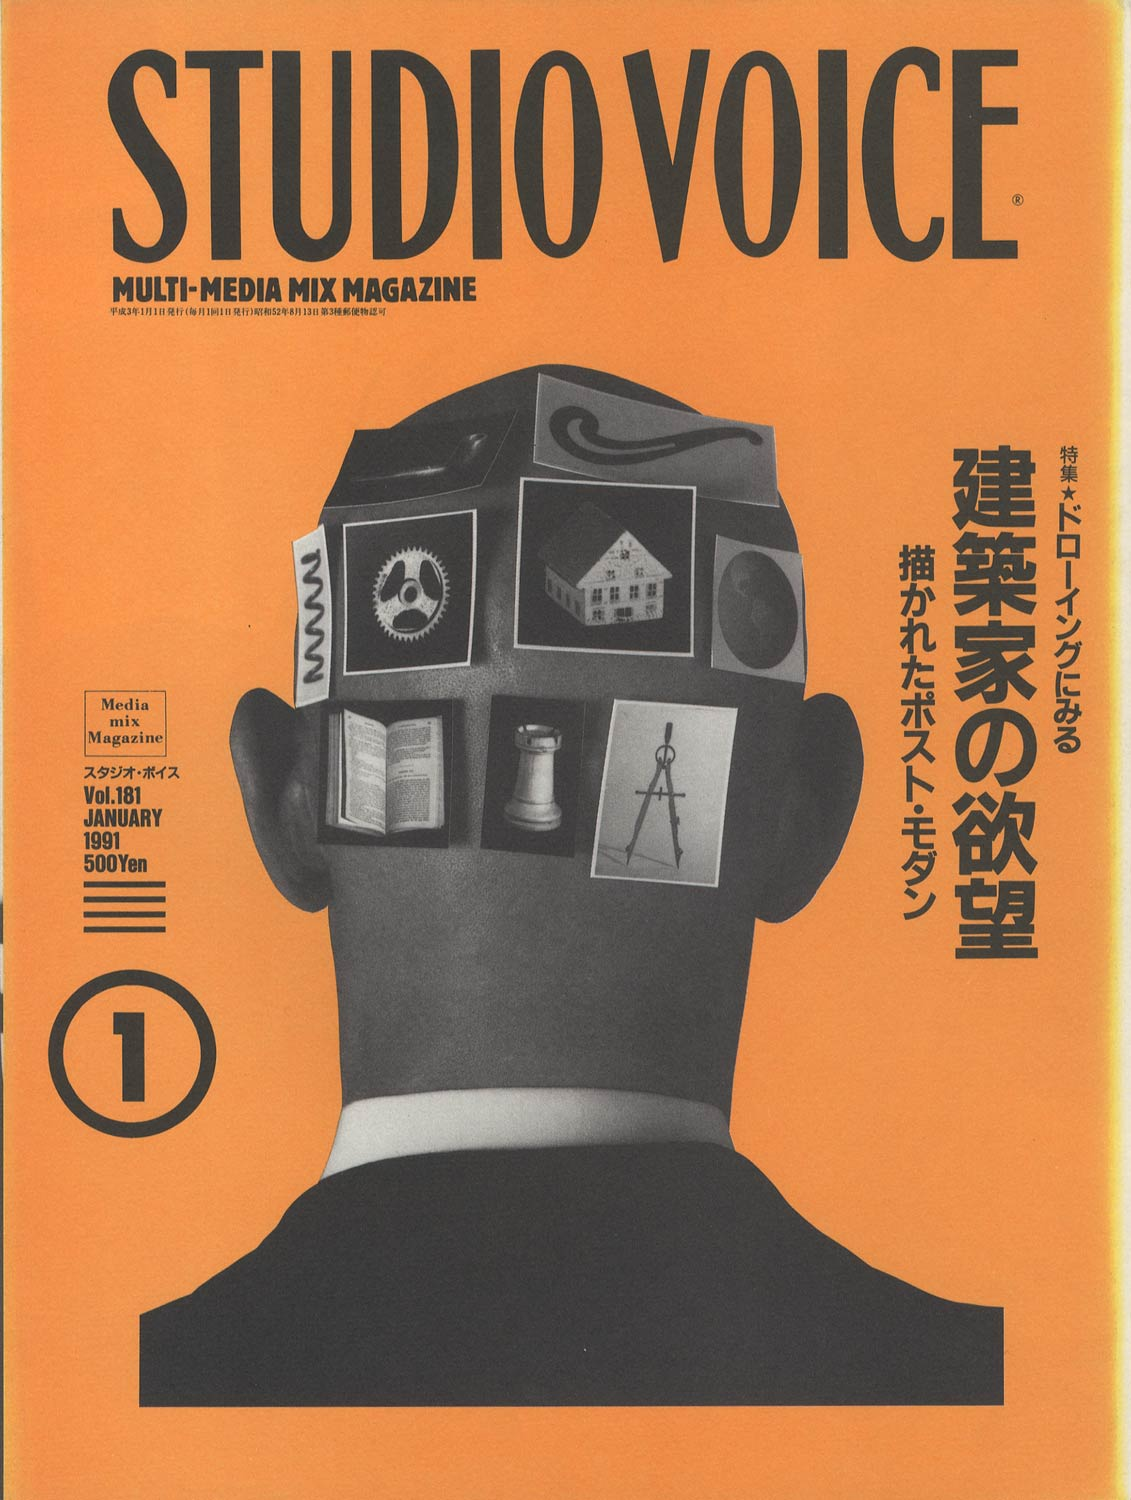 STUDIO VOICE MULTI-MEDIA MIX MAGAZINE/スタジオ・ボイス 1991年1月号 Vol.181